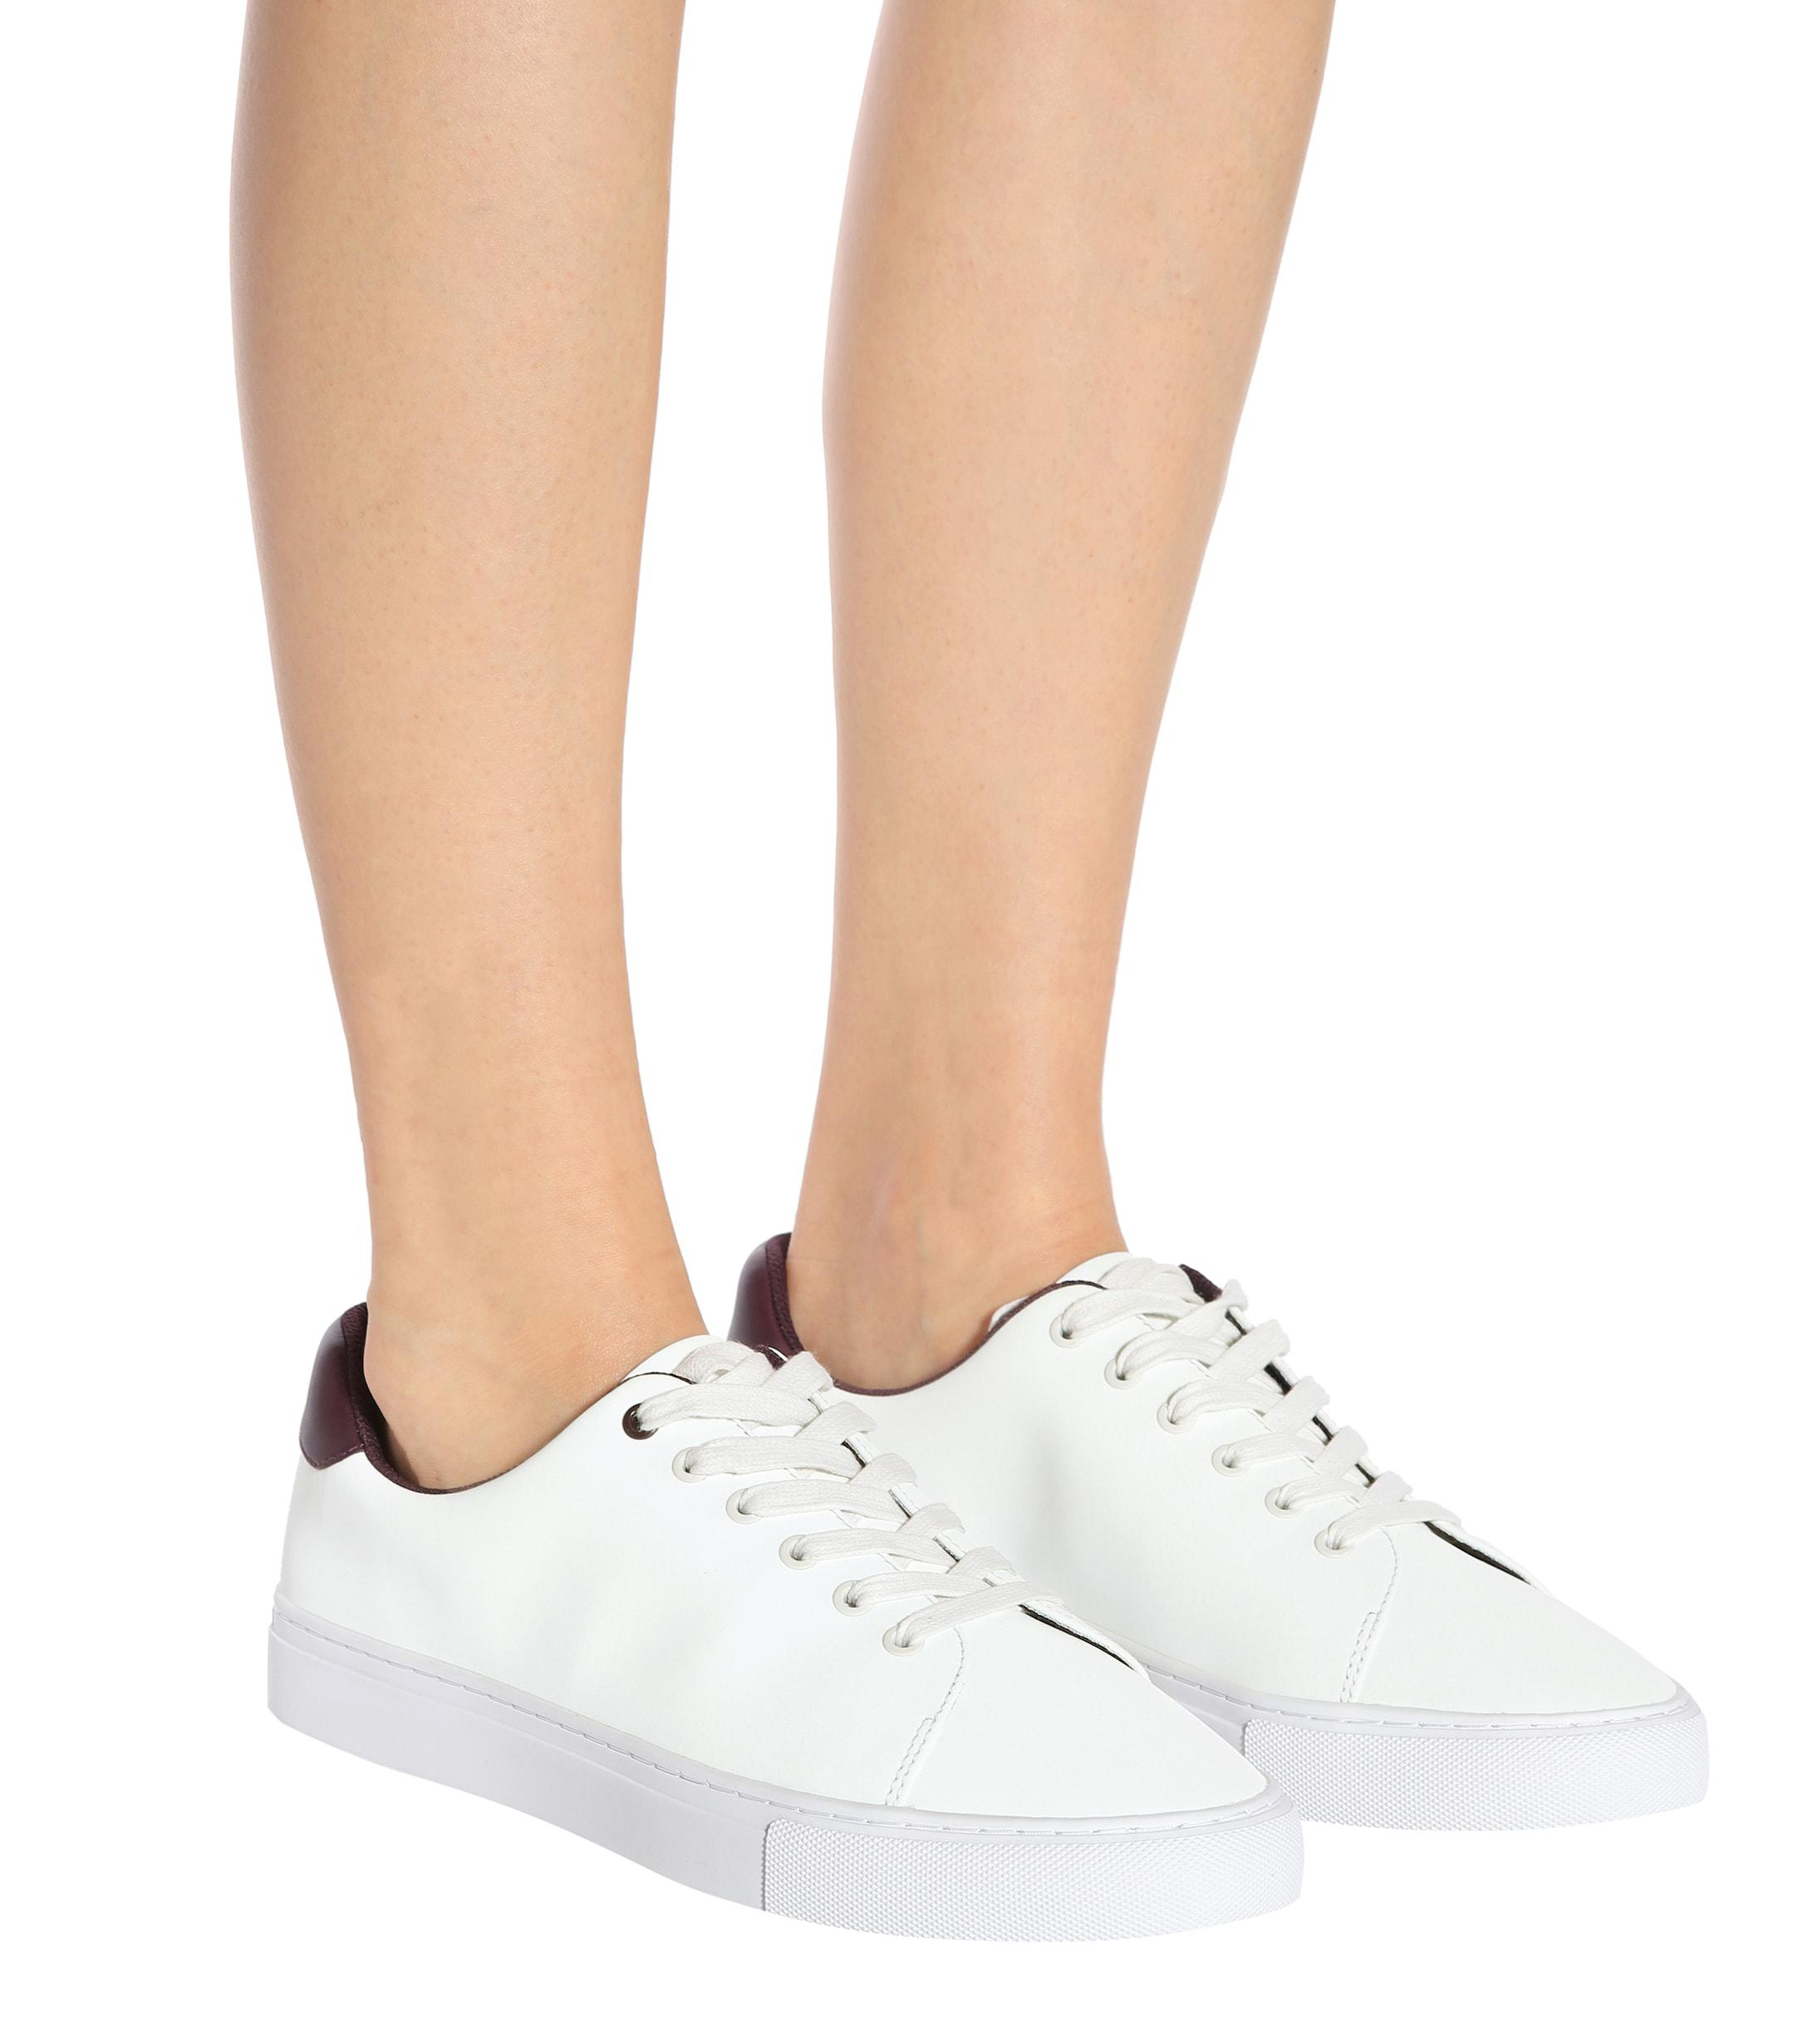 Tory Sport Reflective Leather Sneakers in White